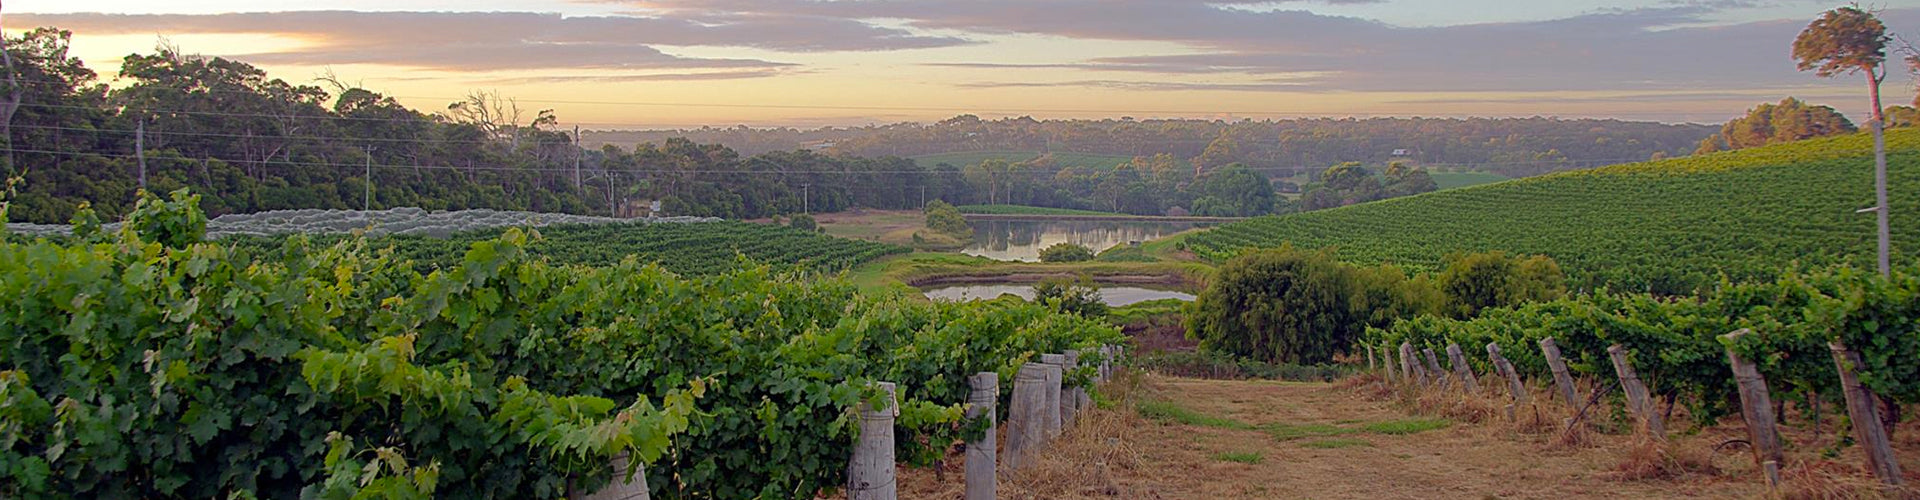 Woodland's Vineyards in Margaret River, Western Australia